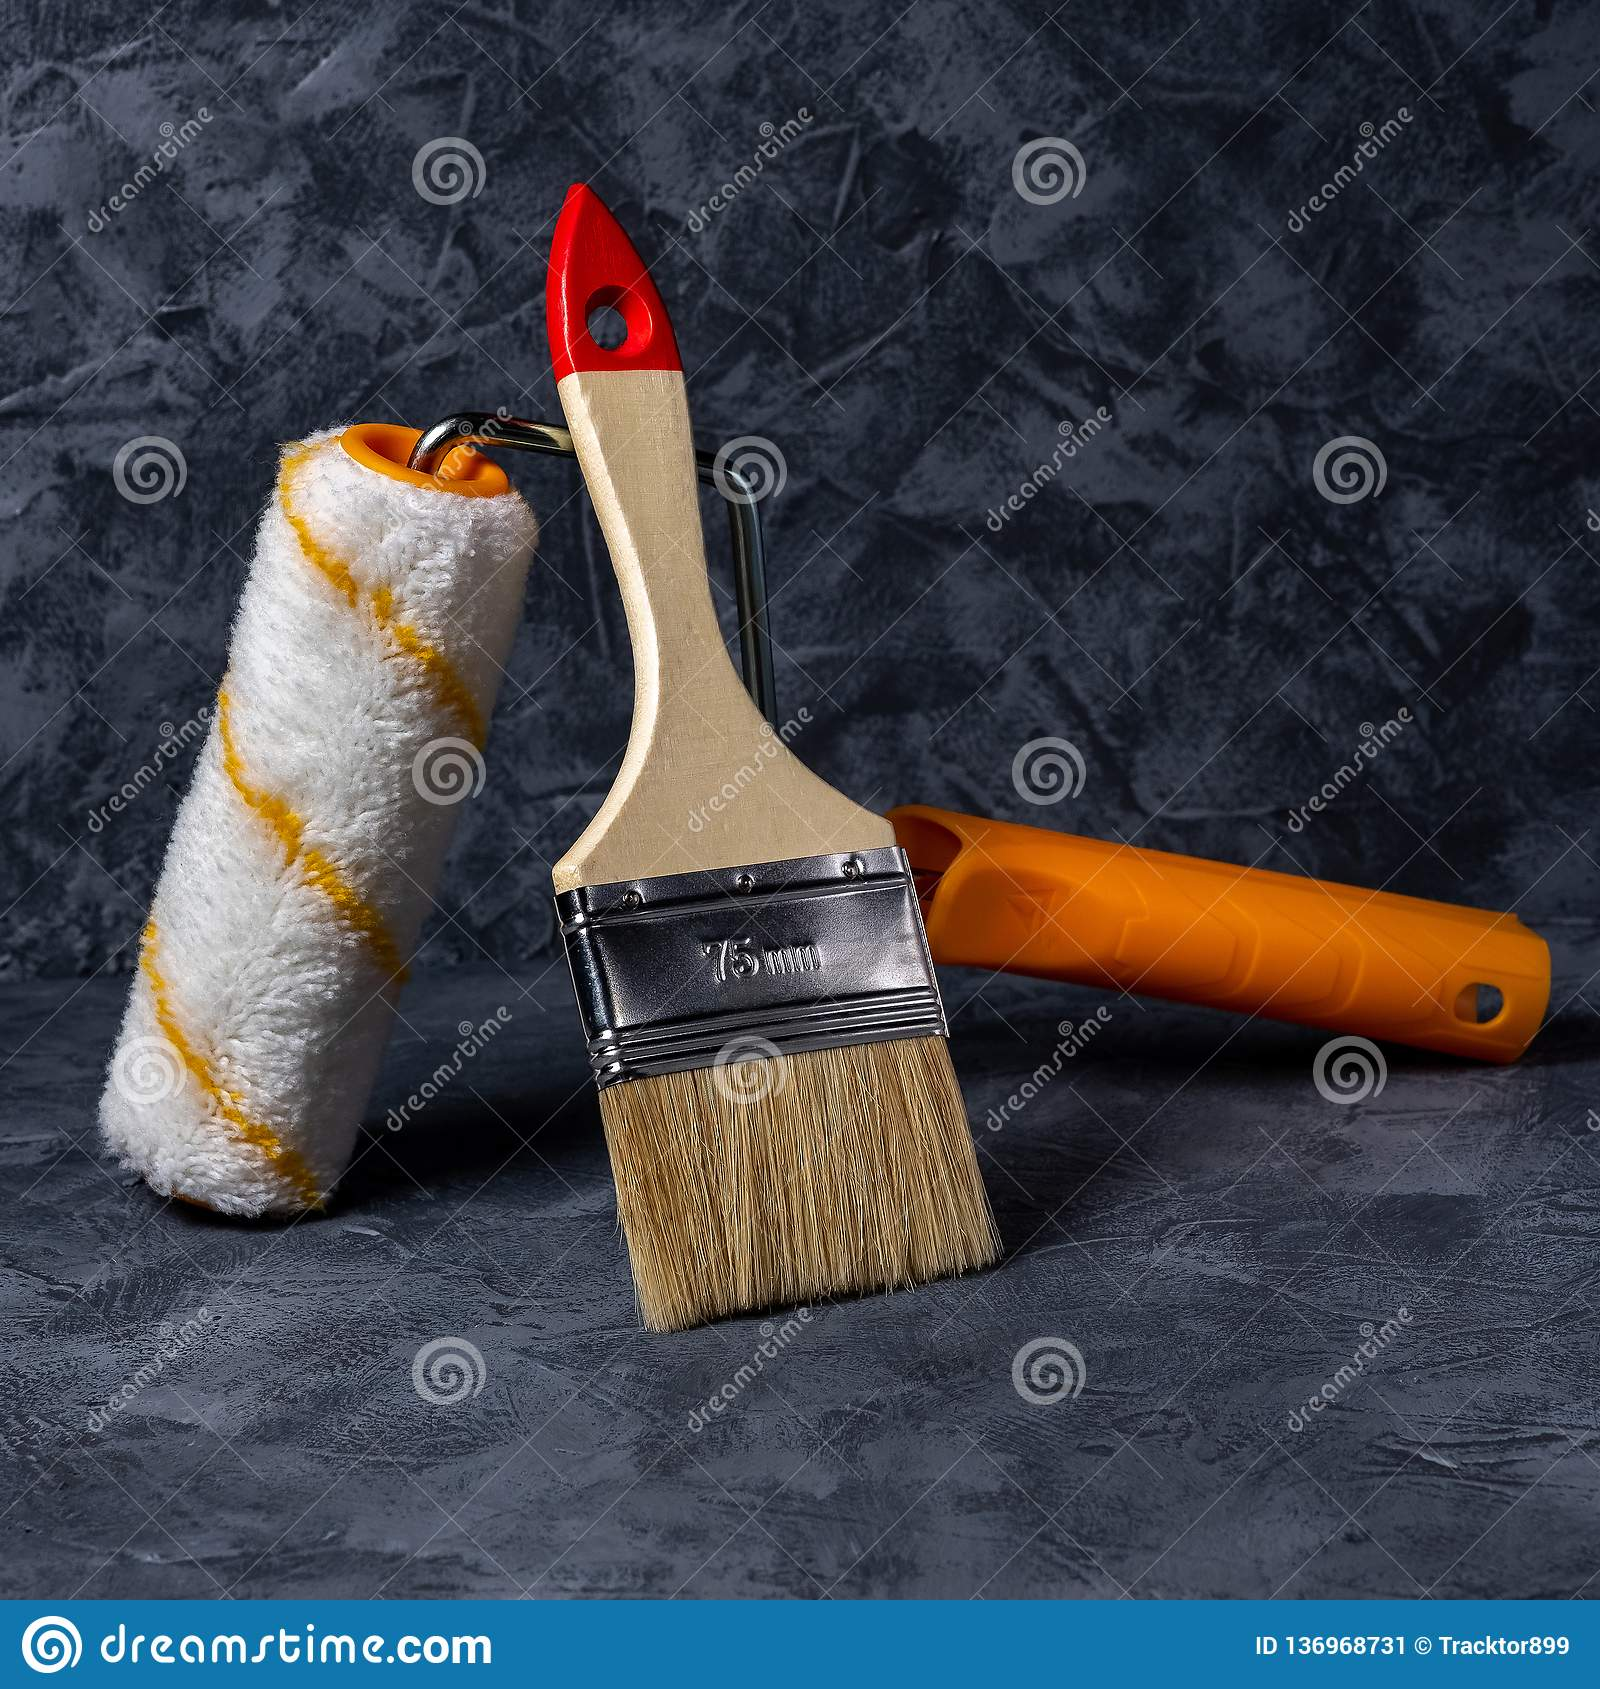 Roller and brush. working tool